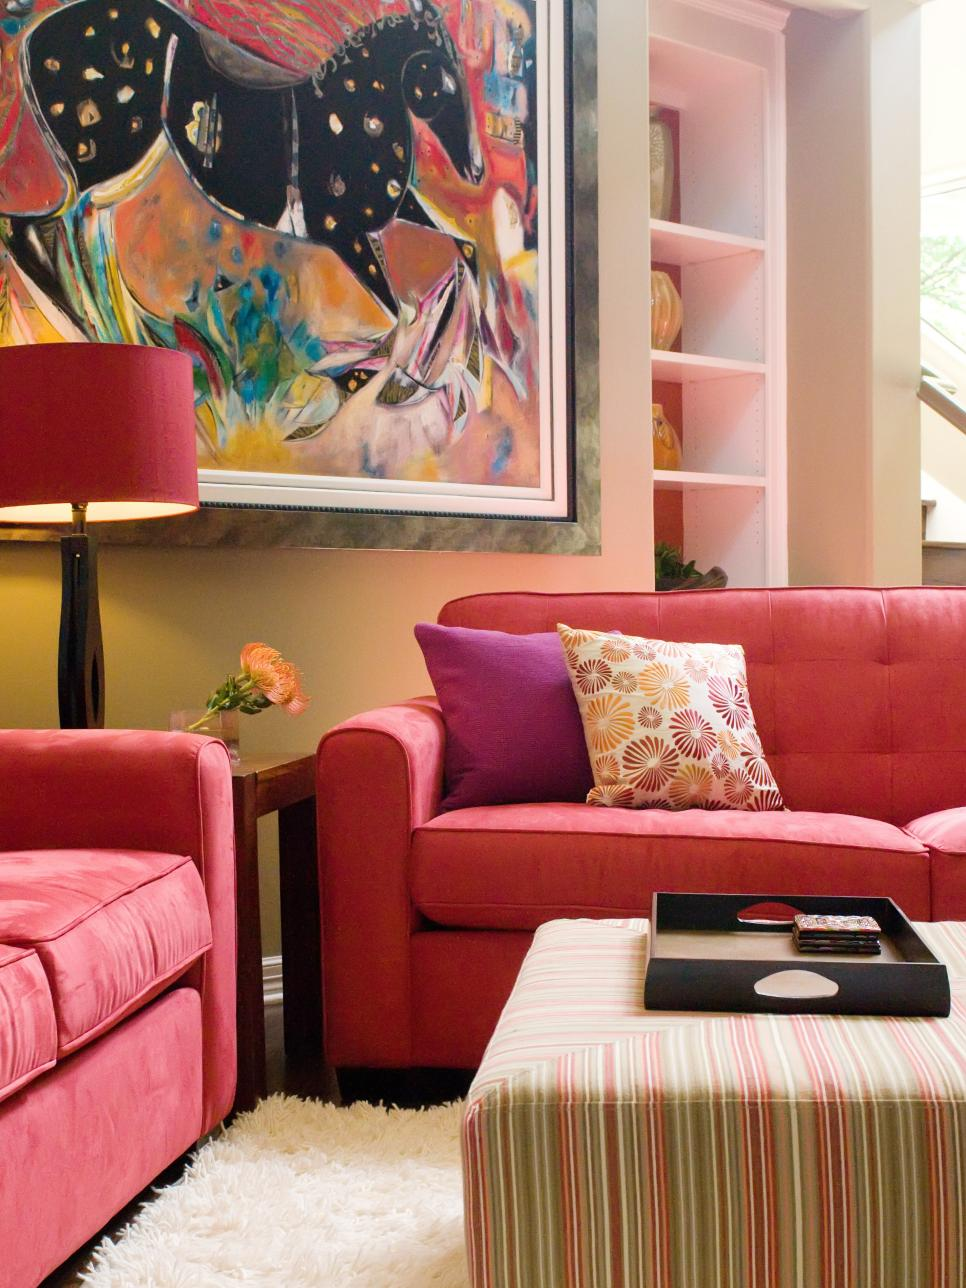 Unique Red Couches Living Room 72 On Sofa Design Ideas with Red Couches Living Room